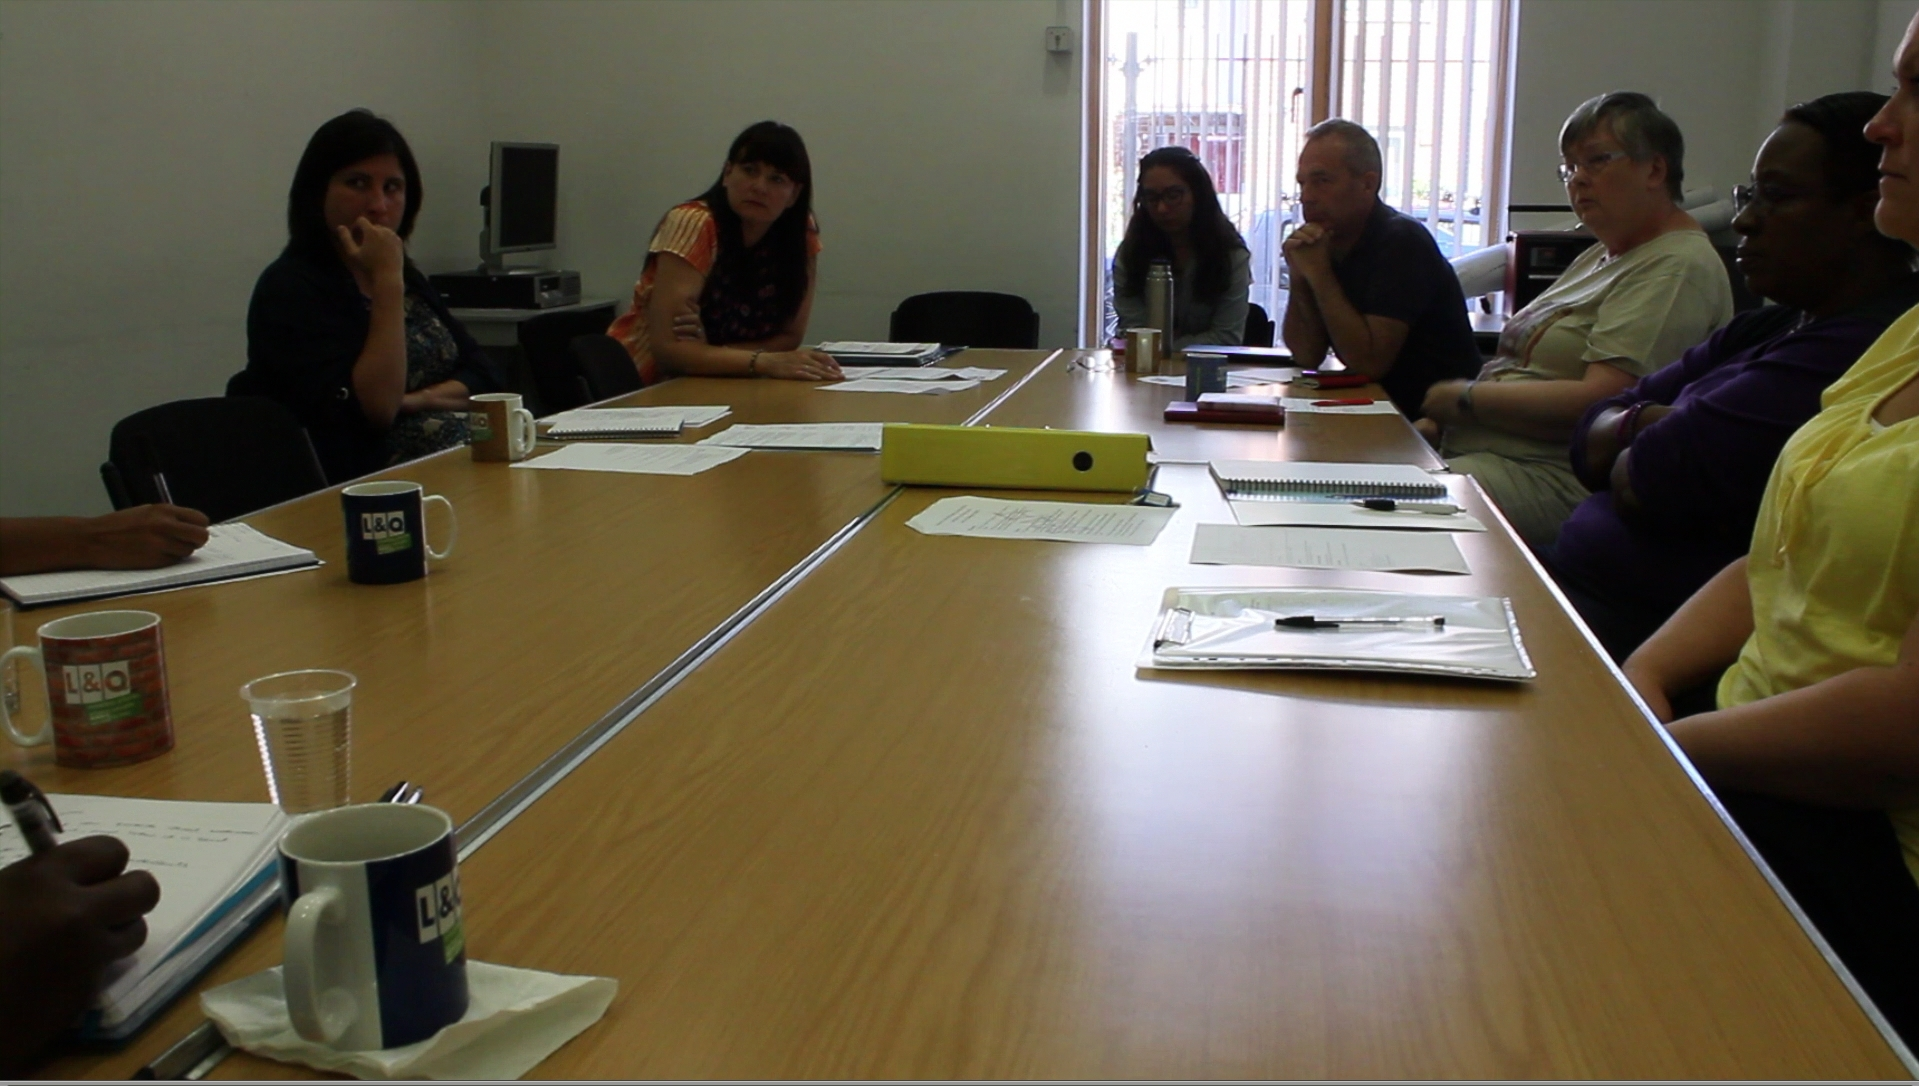 Meeting between community steering group members and L&Q staff, in which staff asked not to be filmed or photographed